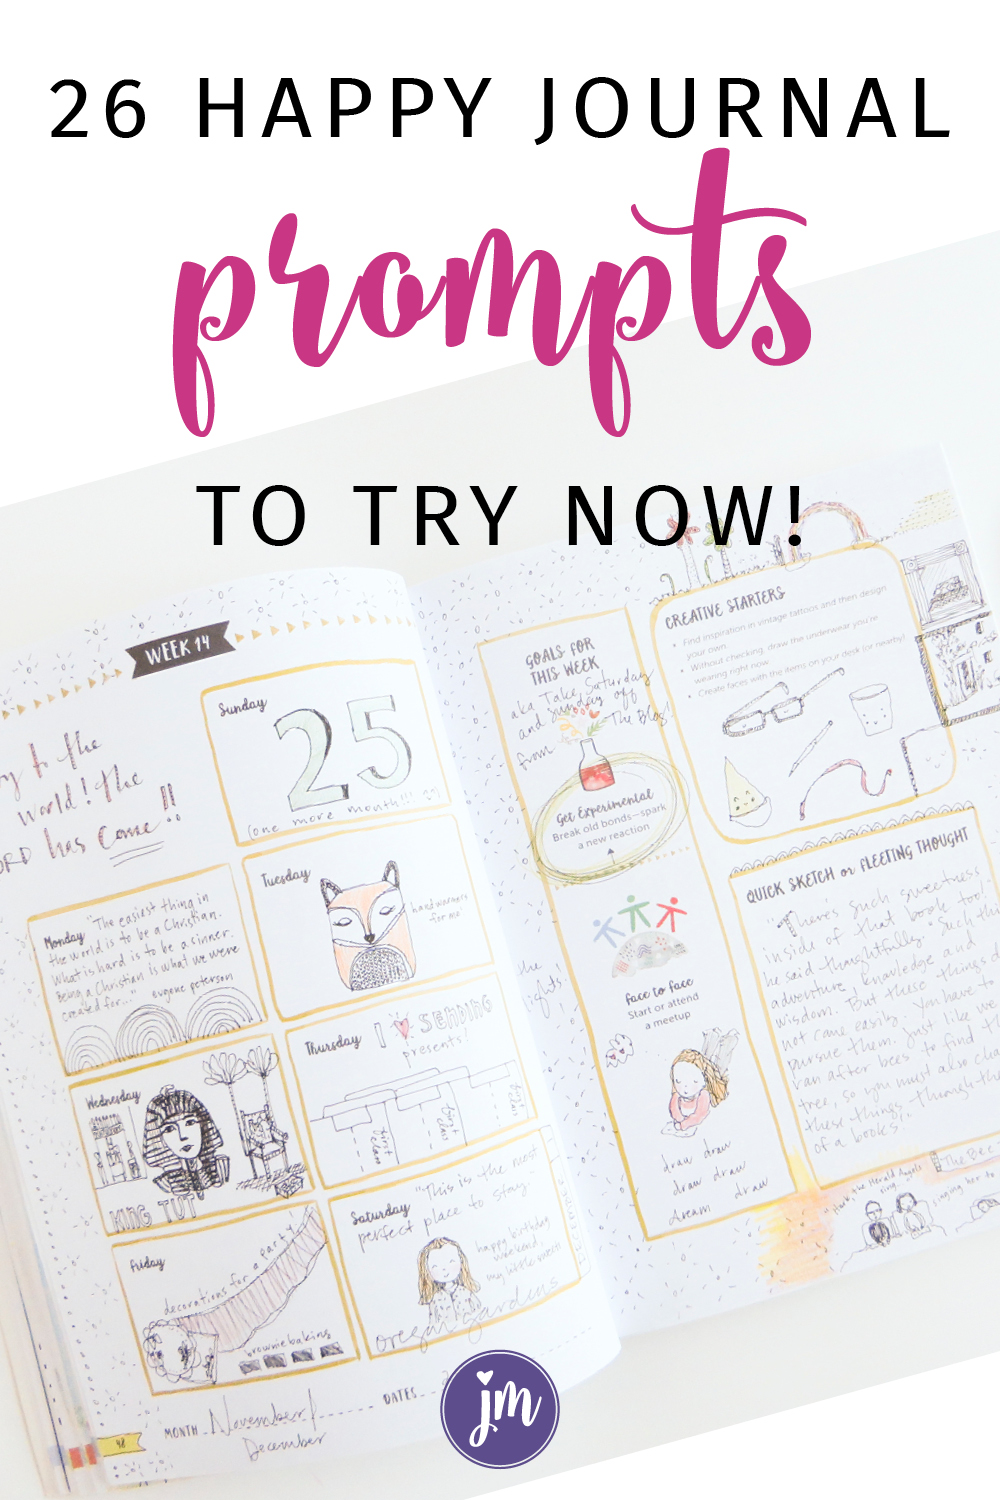 LOVE these prompts! They're great for bullet journals too! A happy journal is the cute, rambunctious kiddo of an art journal and gratitude journal. No need to pull out all the art supplies to make an art journal spread . . . and no need to keep a list a mile long of everything you're grateful for in life. I love my happy journal so much! #happyjournalhappylife